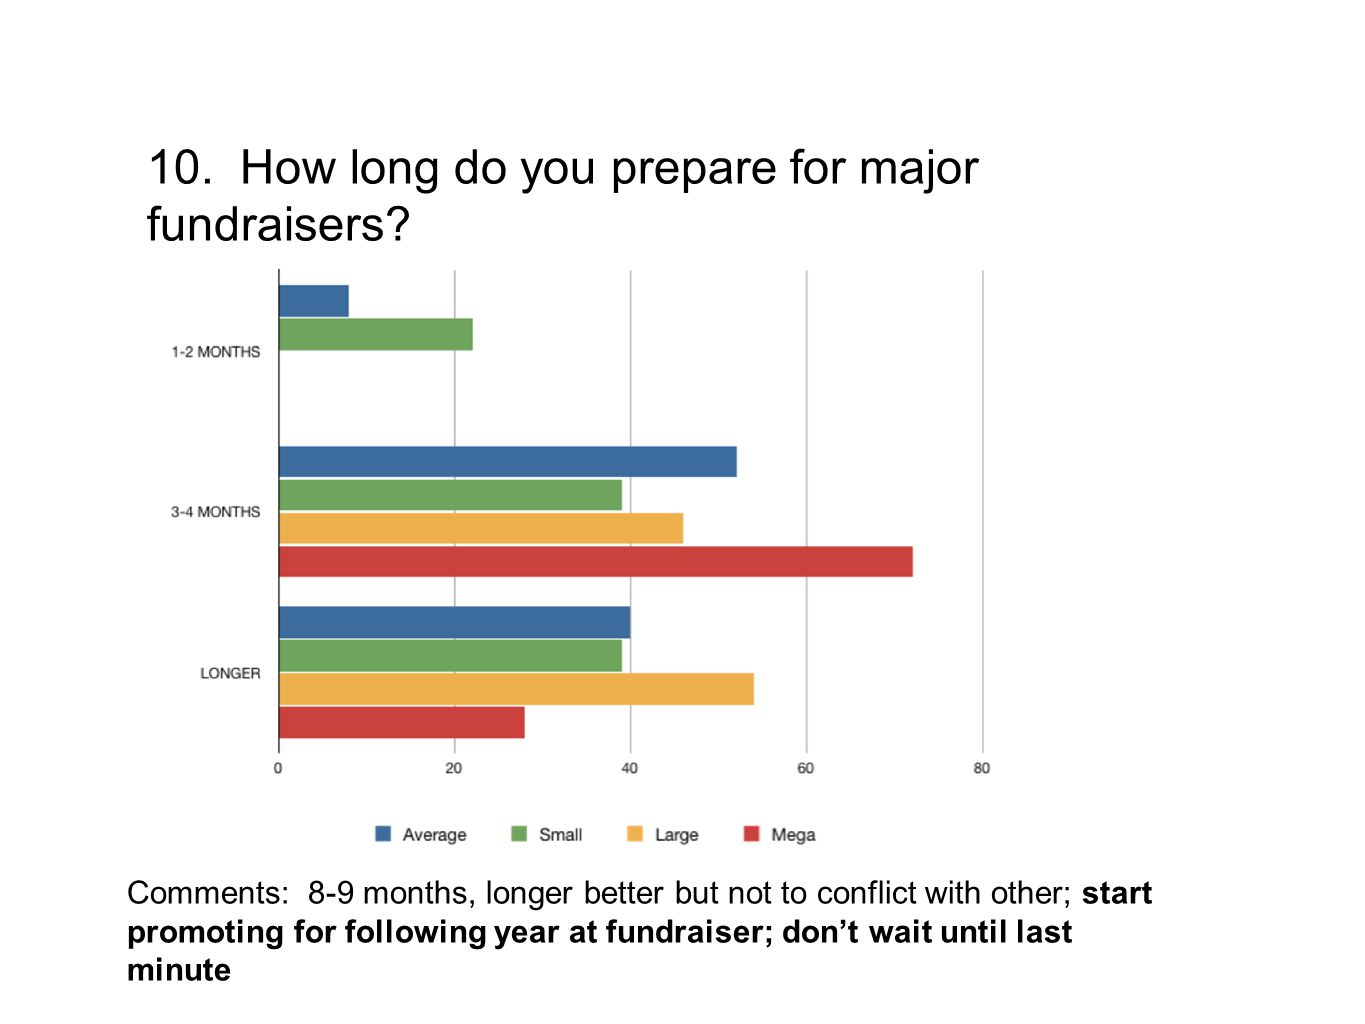 10. How long do you prepare for major fundraisers? Comments: 8-9 months, longer better but not to conflict with other; start promoting for following y